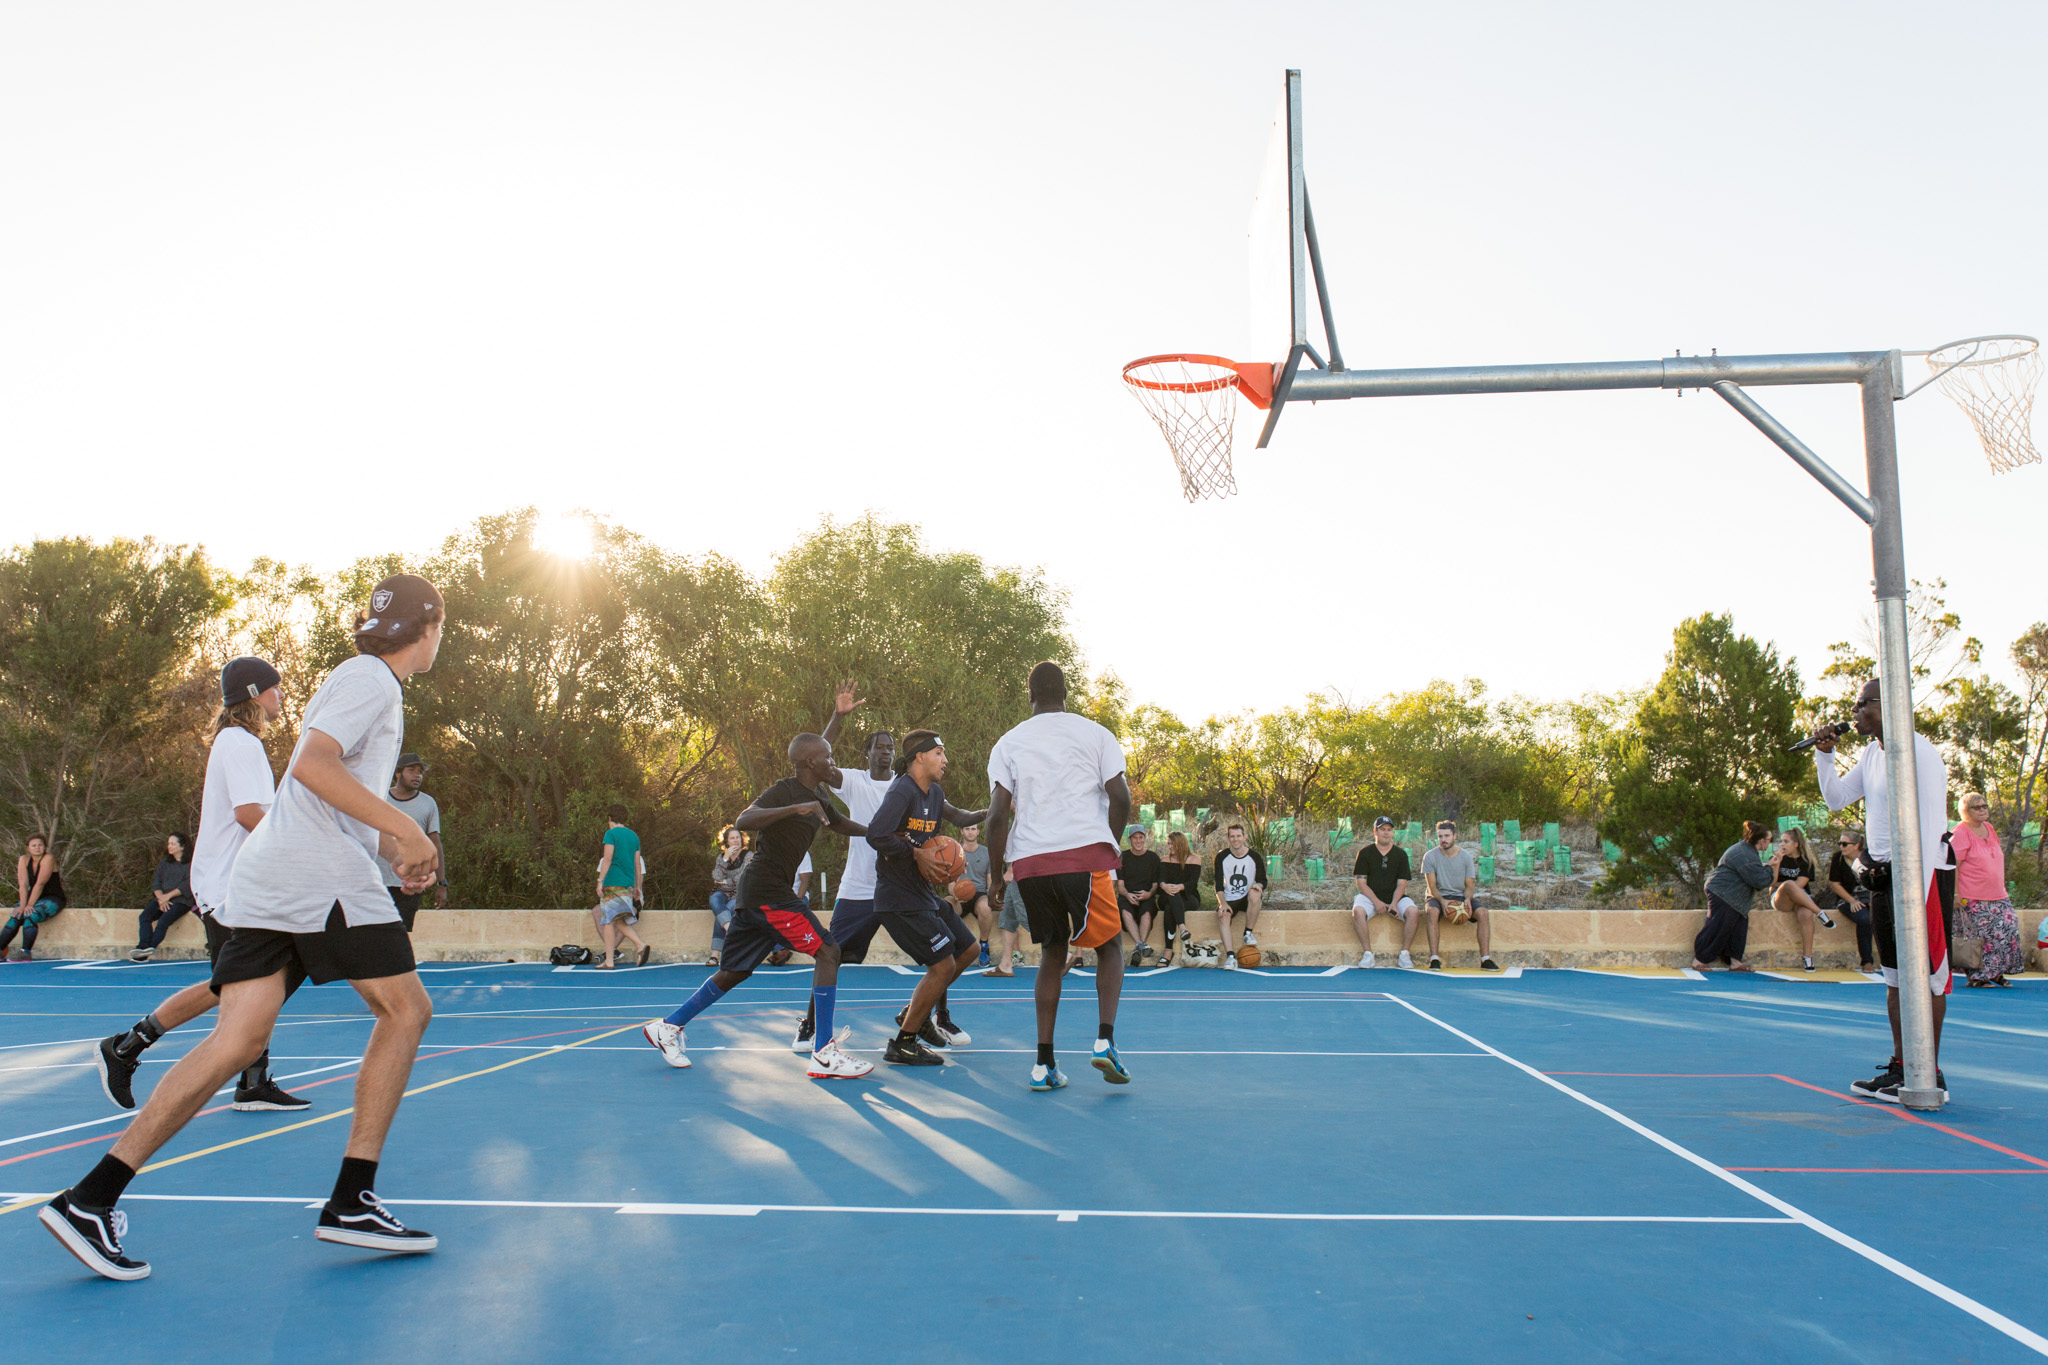 Summer Streetball 3x3 Series - Round 3 | City of Fremantle